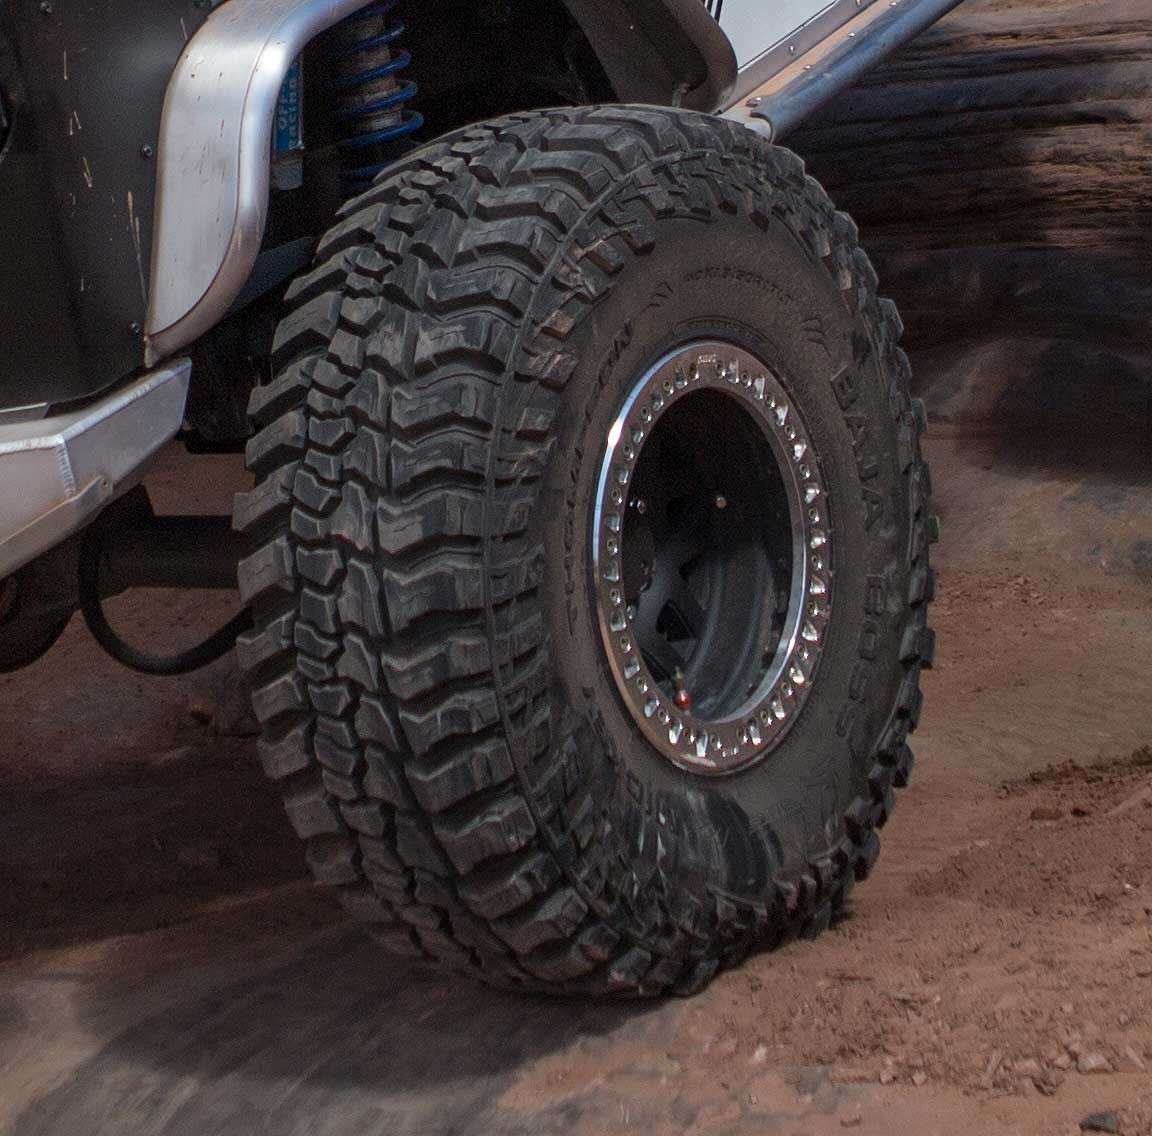 The Boss tire mounted on a KMC wheel and on the trail!